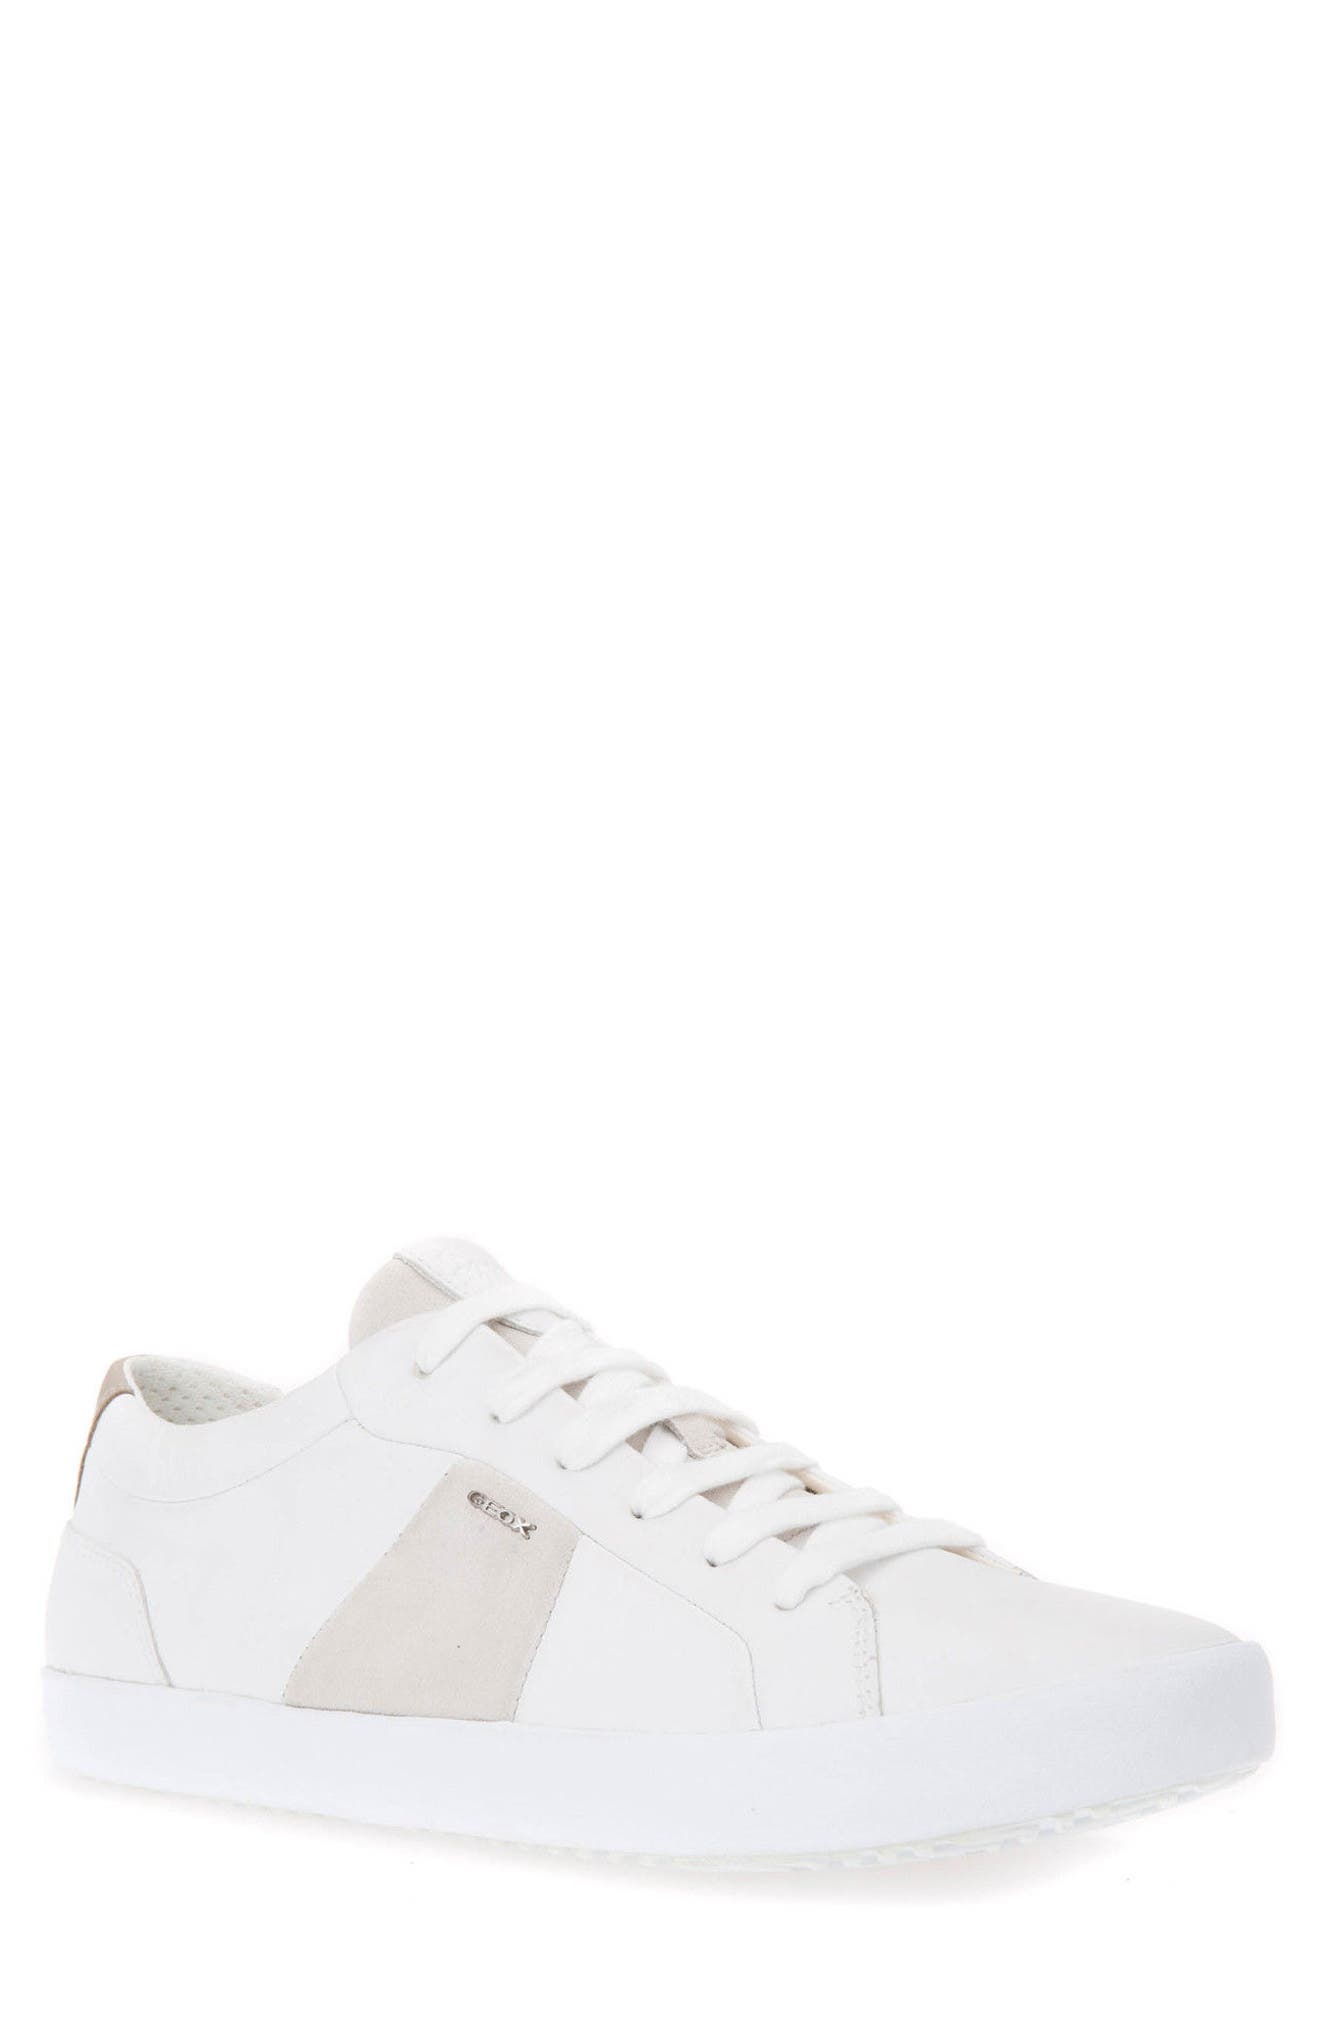 Smart 78 Sneaker,                         Main,                         color, White/ Papyrus Leather